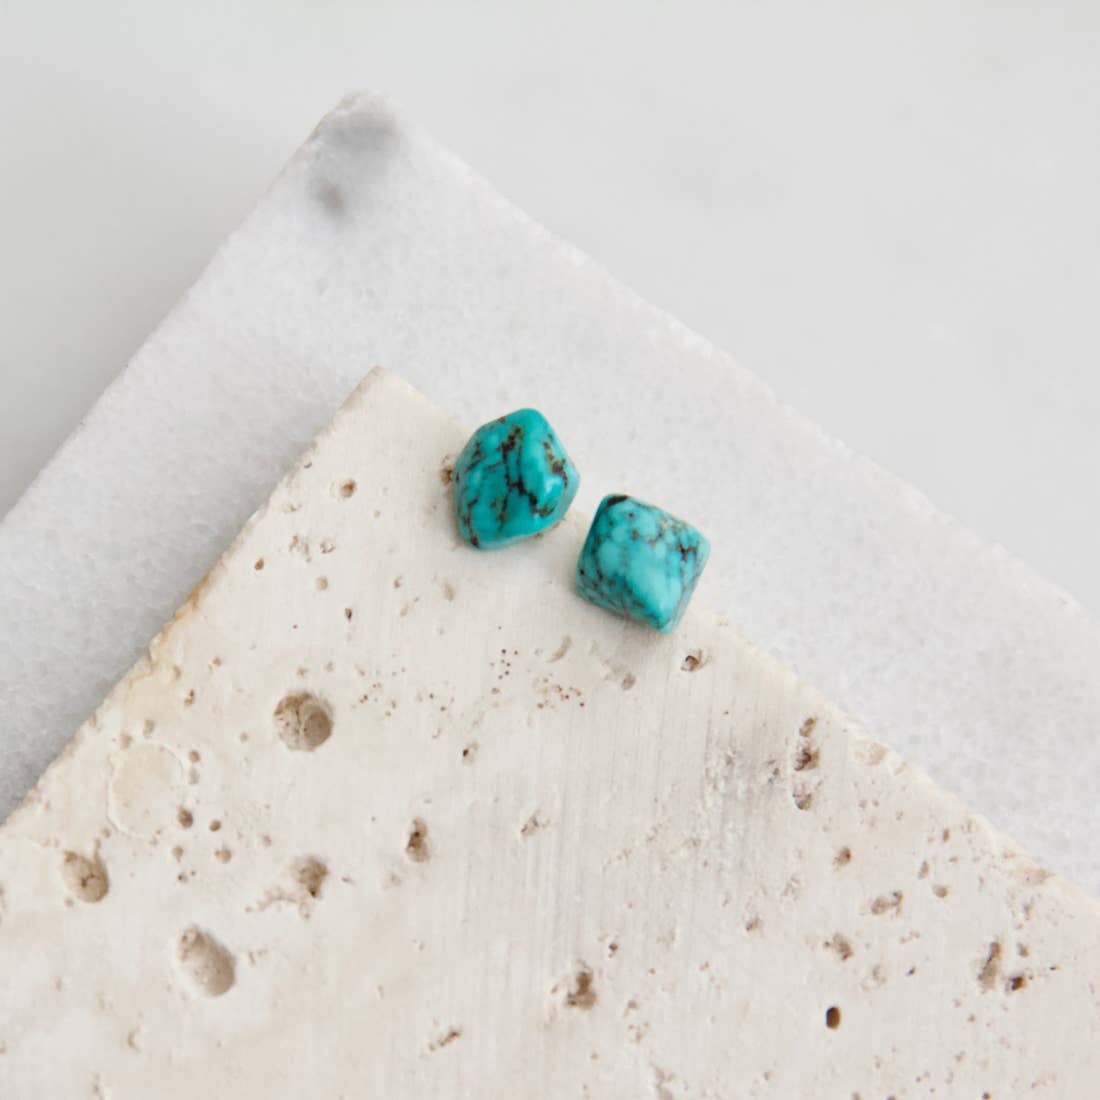 Rough Turquoise Nugget Stud Earrings